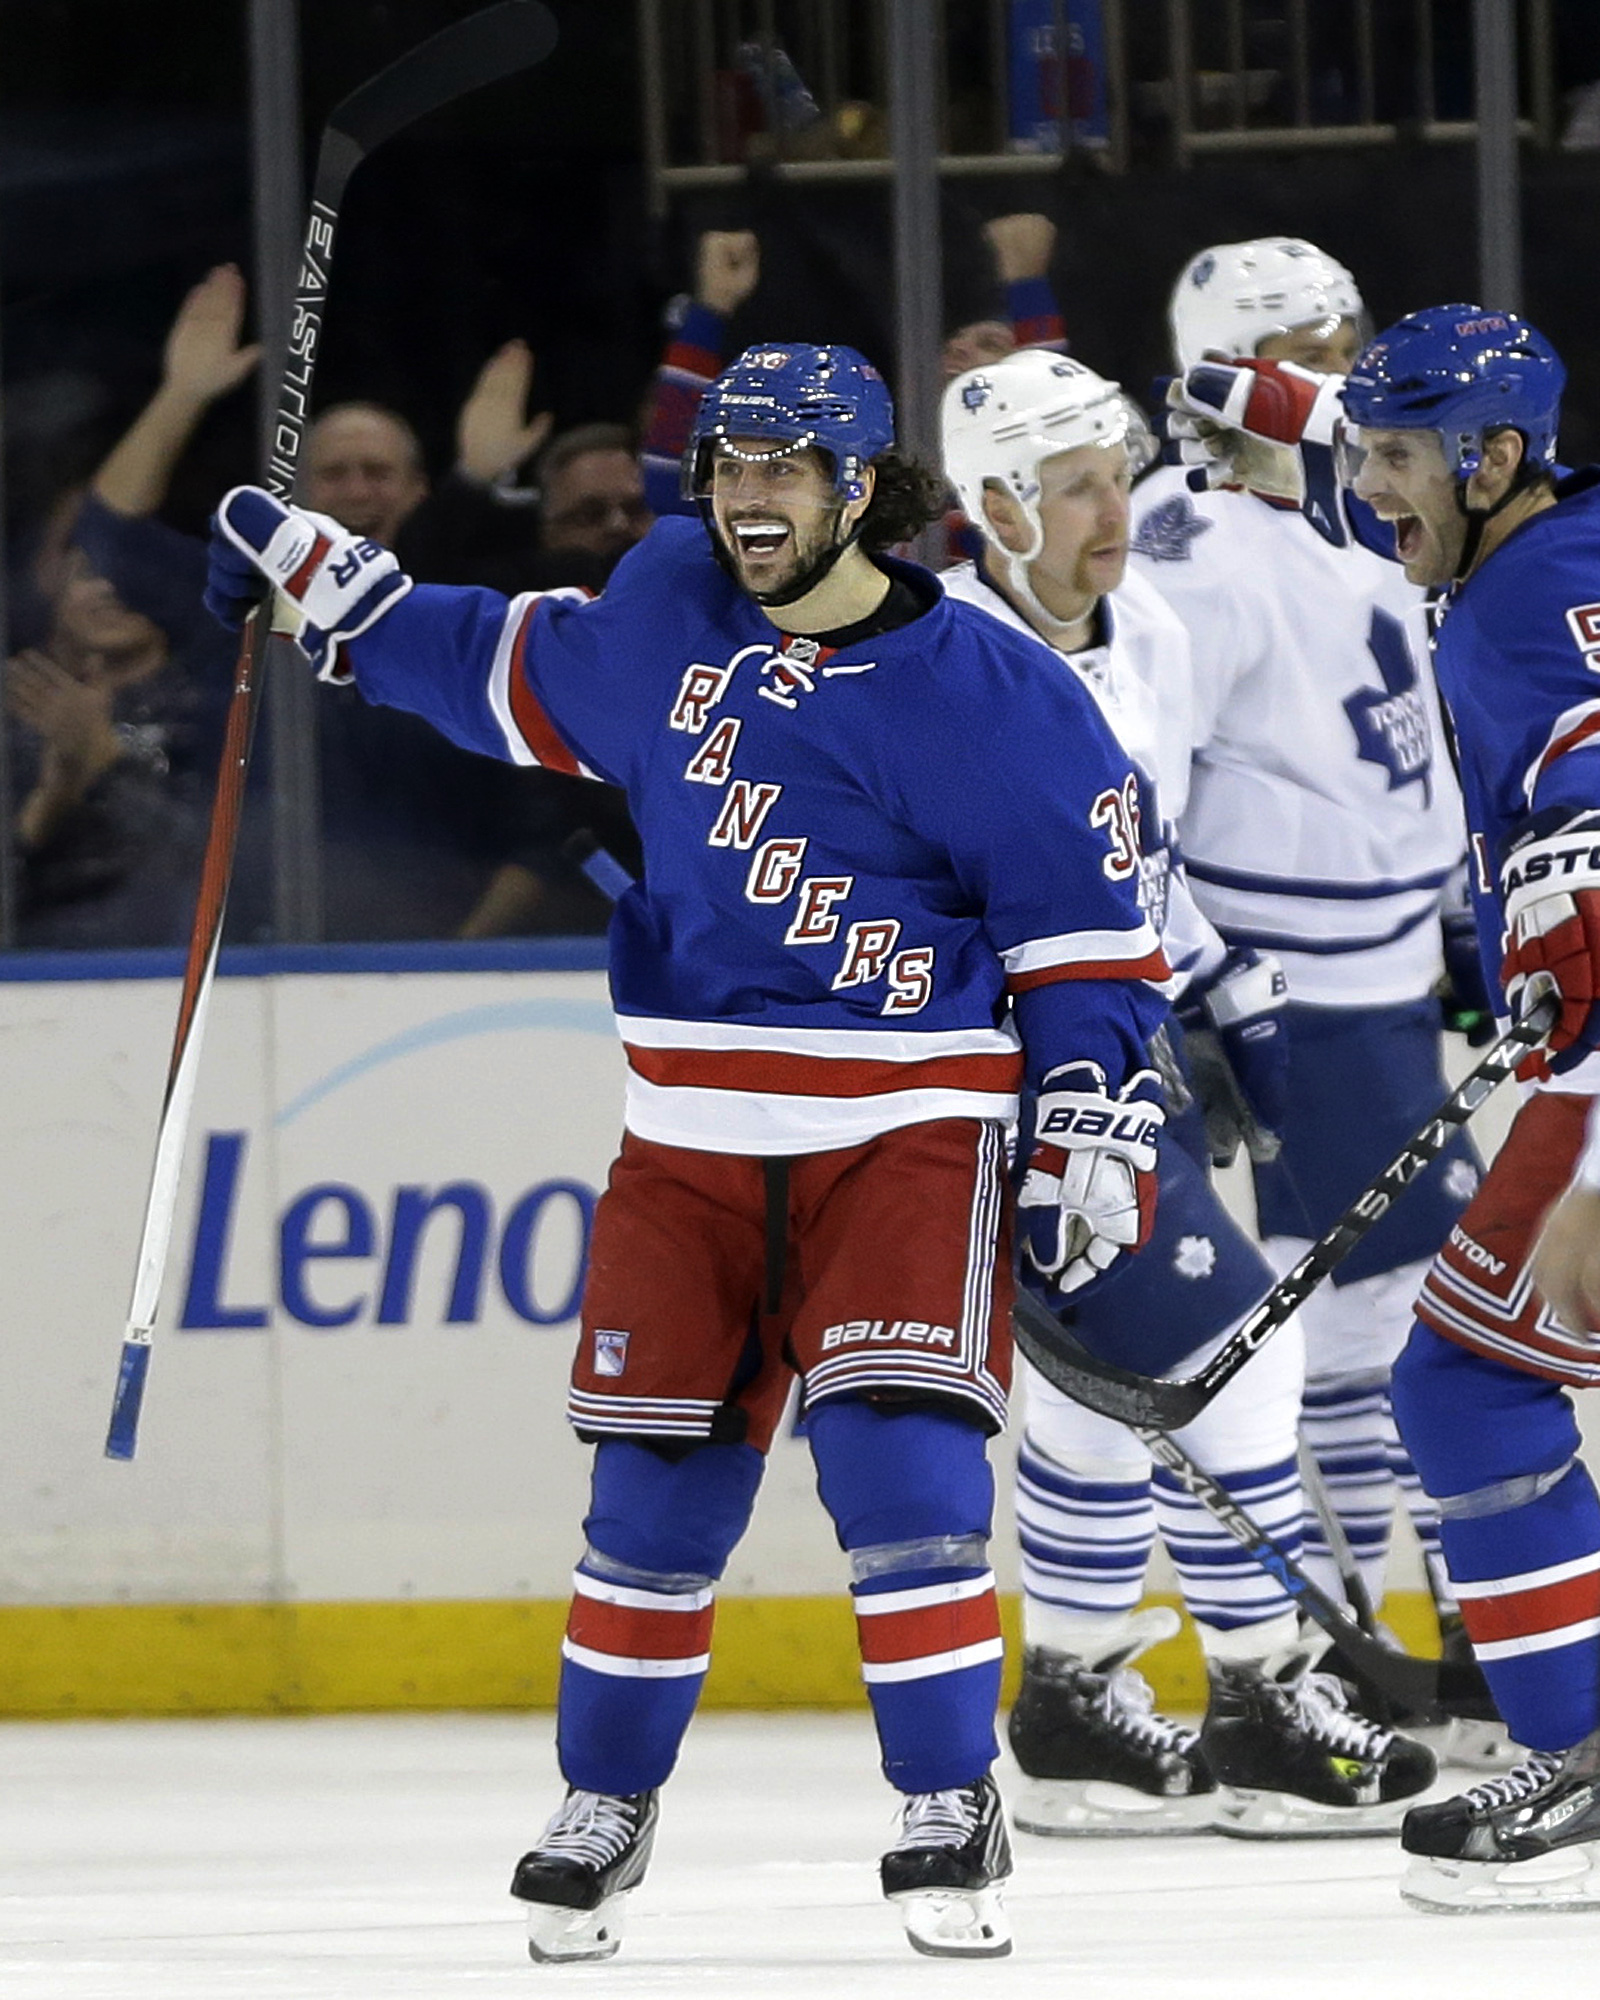 New York Rangers' Mats Zuccarello, left, celebrates his goal during the third period of an NHL hockey game against the New York Rangers on Sunday, Nov. 15, 2015, in New York. The Rangers defeated the Maple Leafs 4-3. (AP Photo/Seth Wenig)